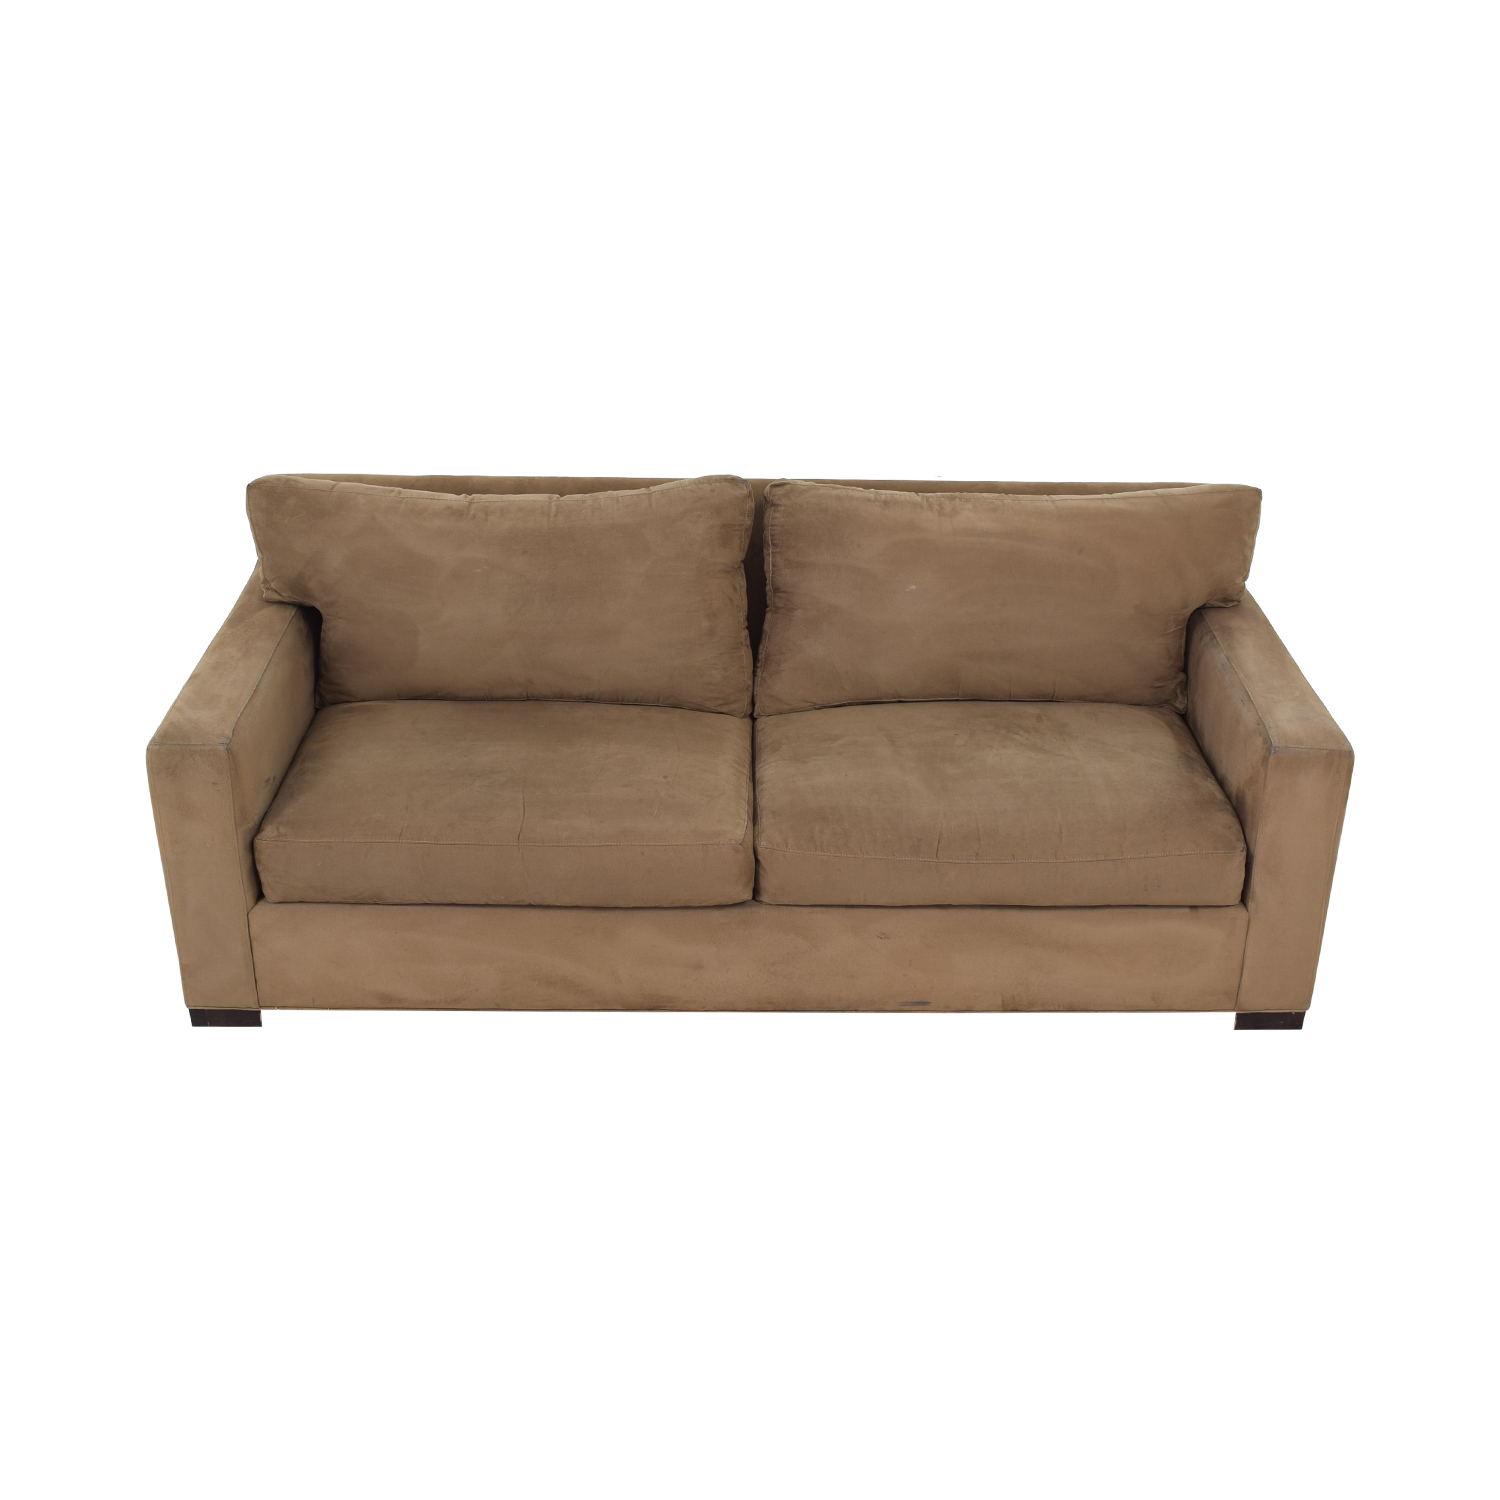 buy Crate & Barrel Axis 2-Seat Sofa Crate & Barrel Classic Sofas